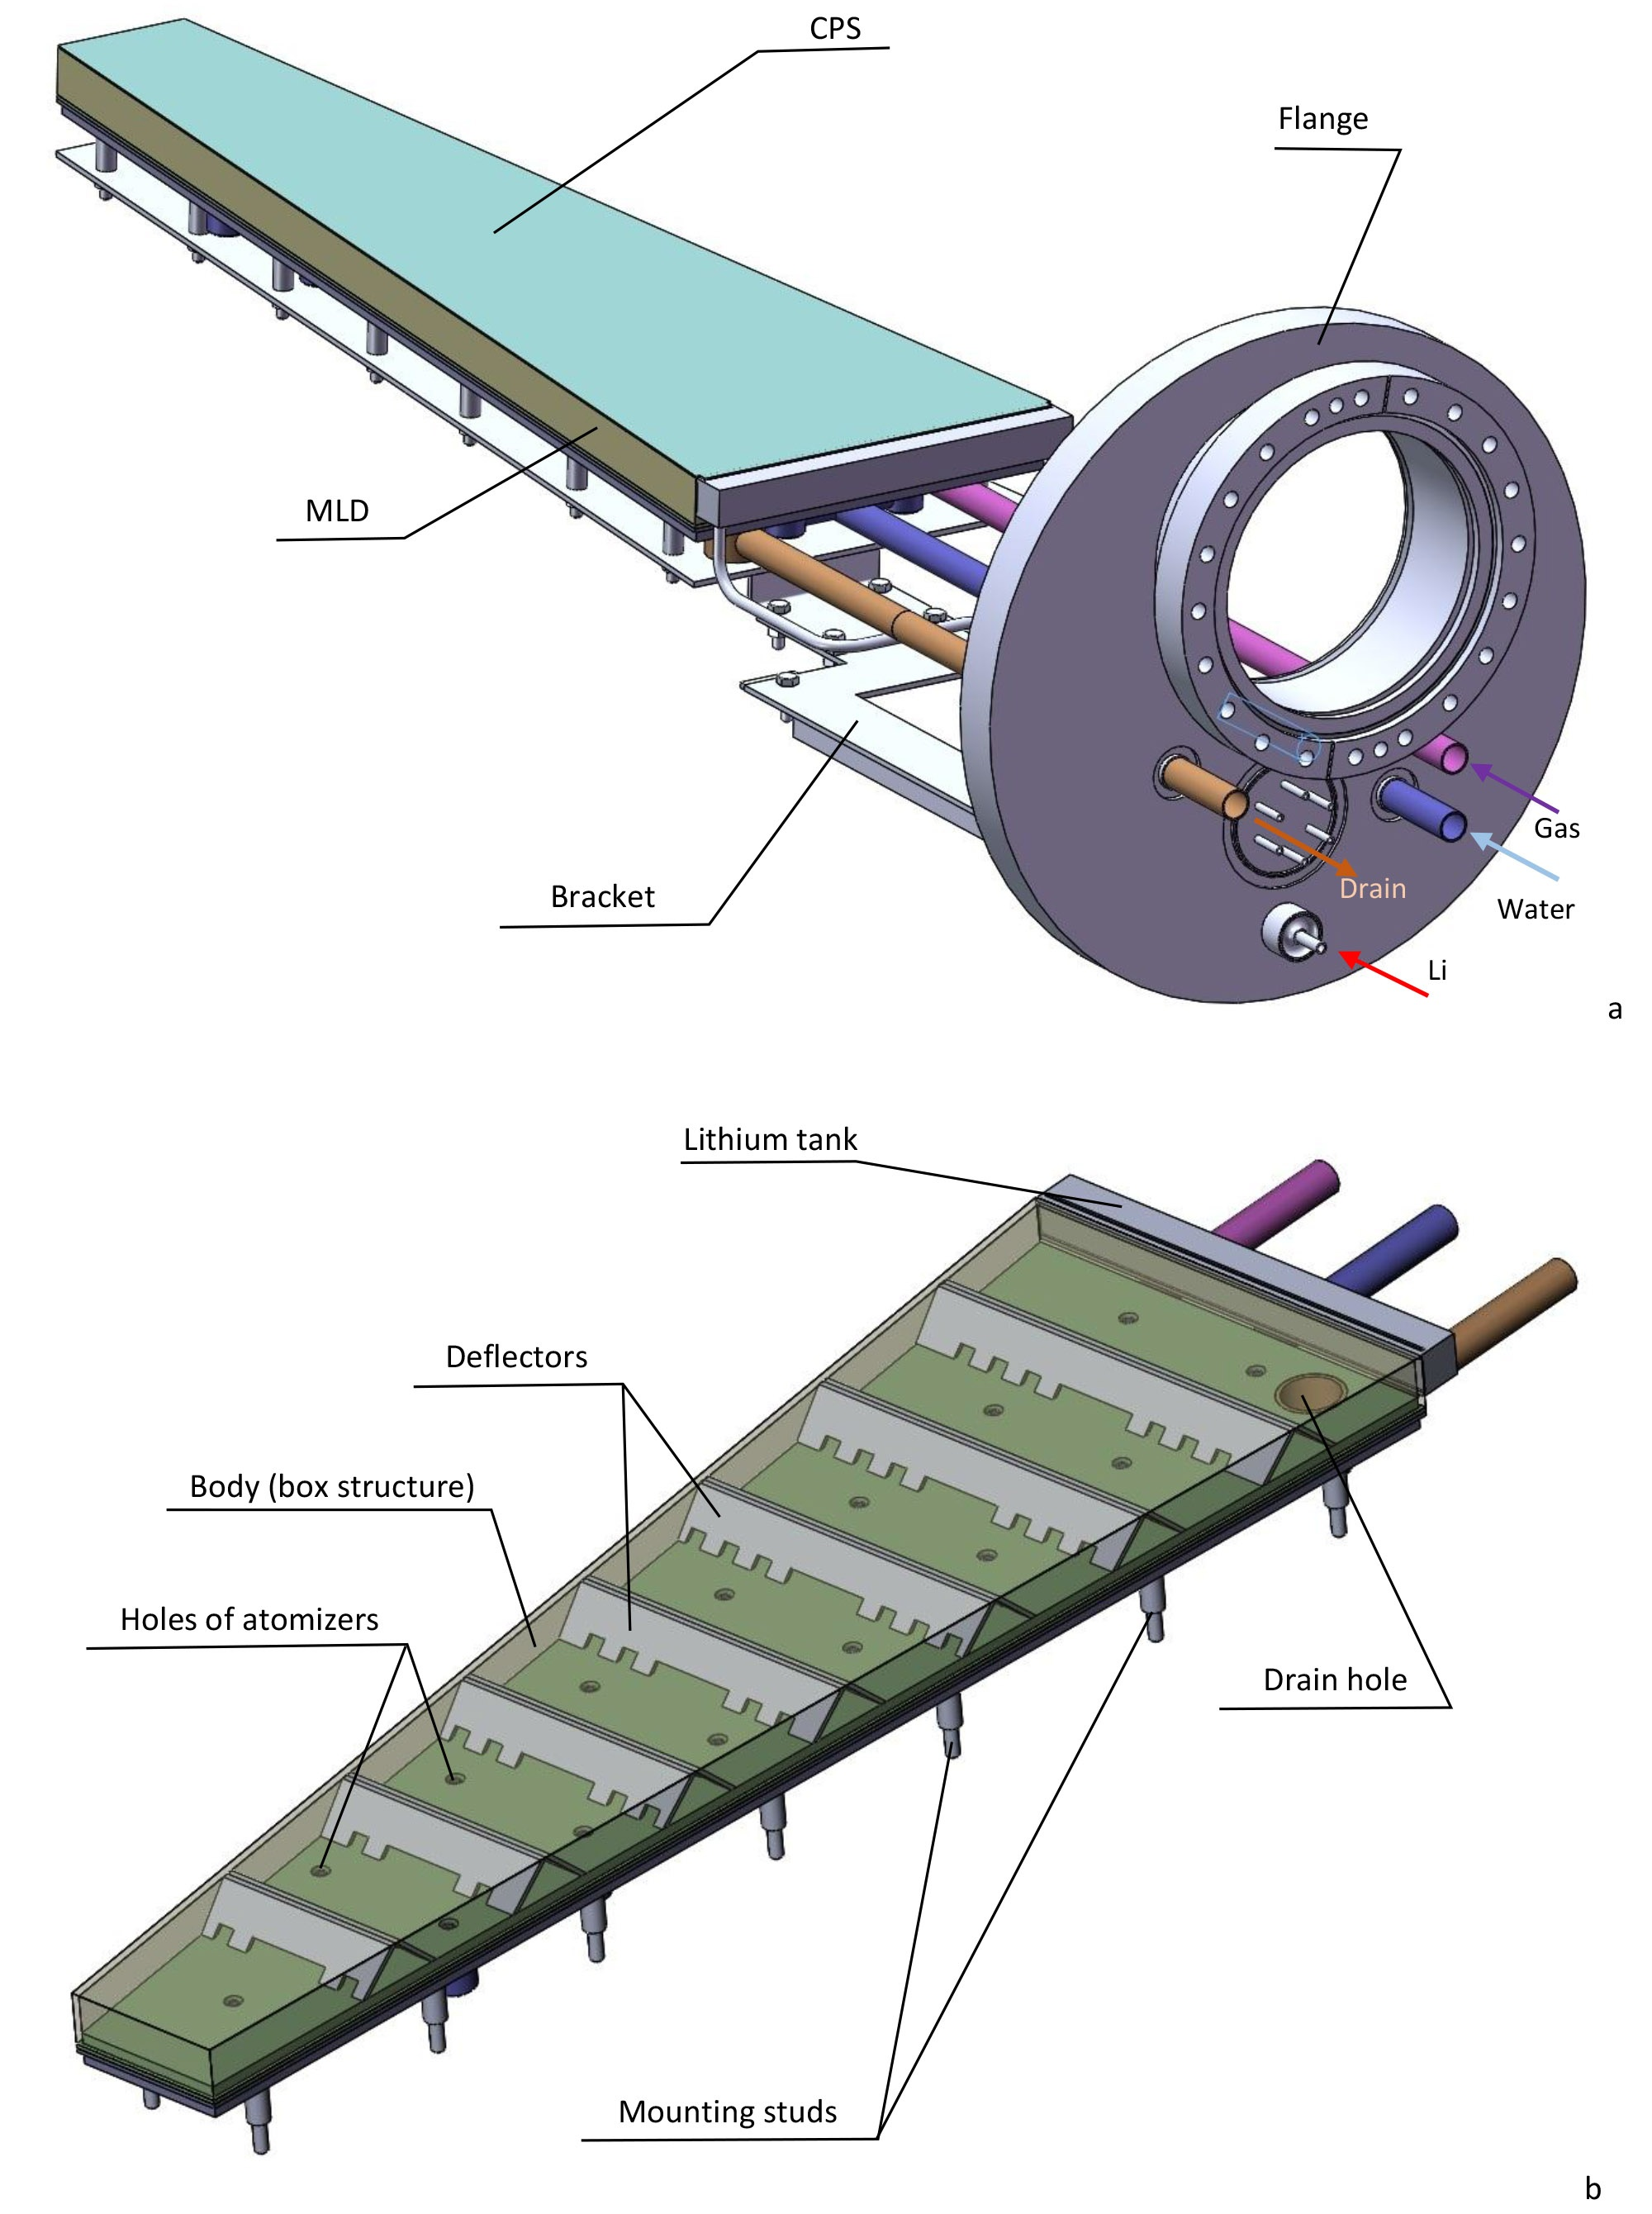 Upgraded design solution for the MLD of KTM tokamak